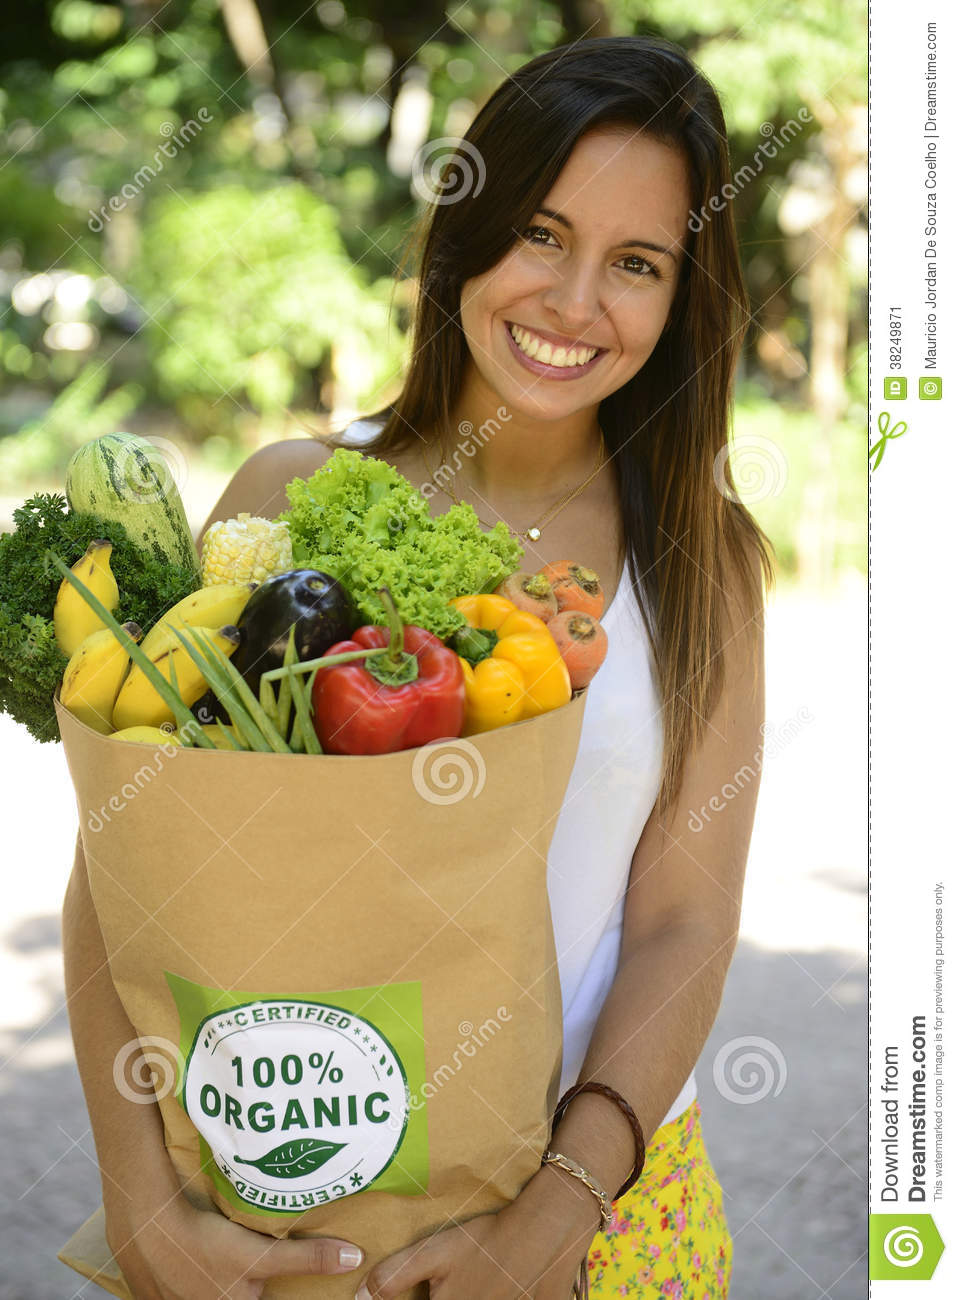 Woman holding shopping paper bag with organic or bio vegetables and fruits.